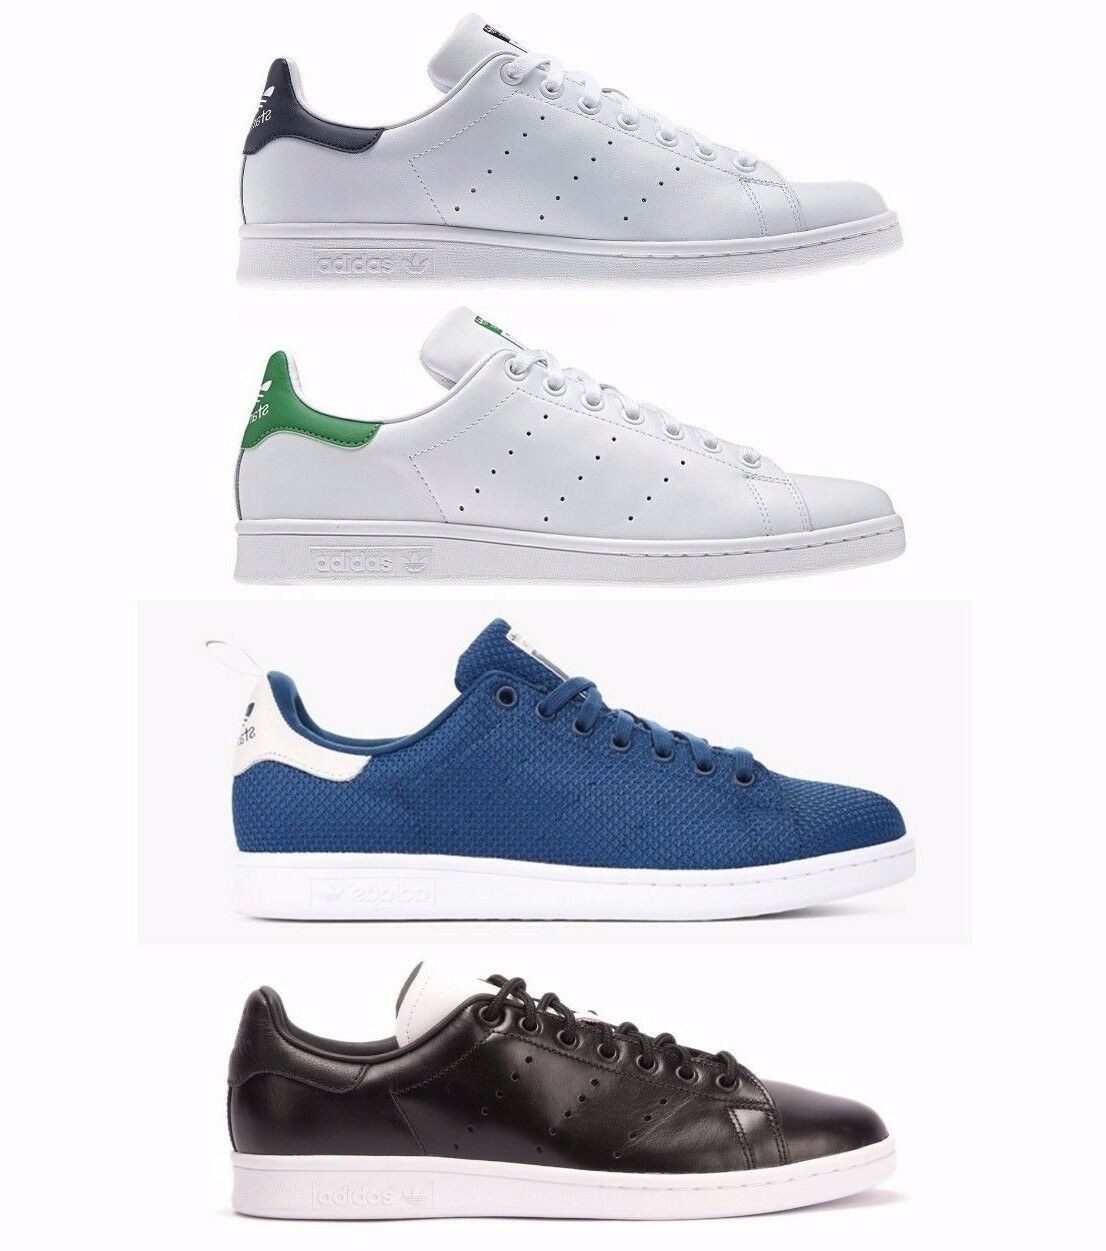 Adidas Stan Smith hommes Originals Trainers Skate Chaussures